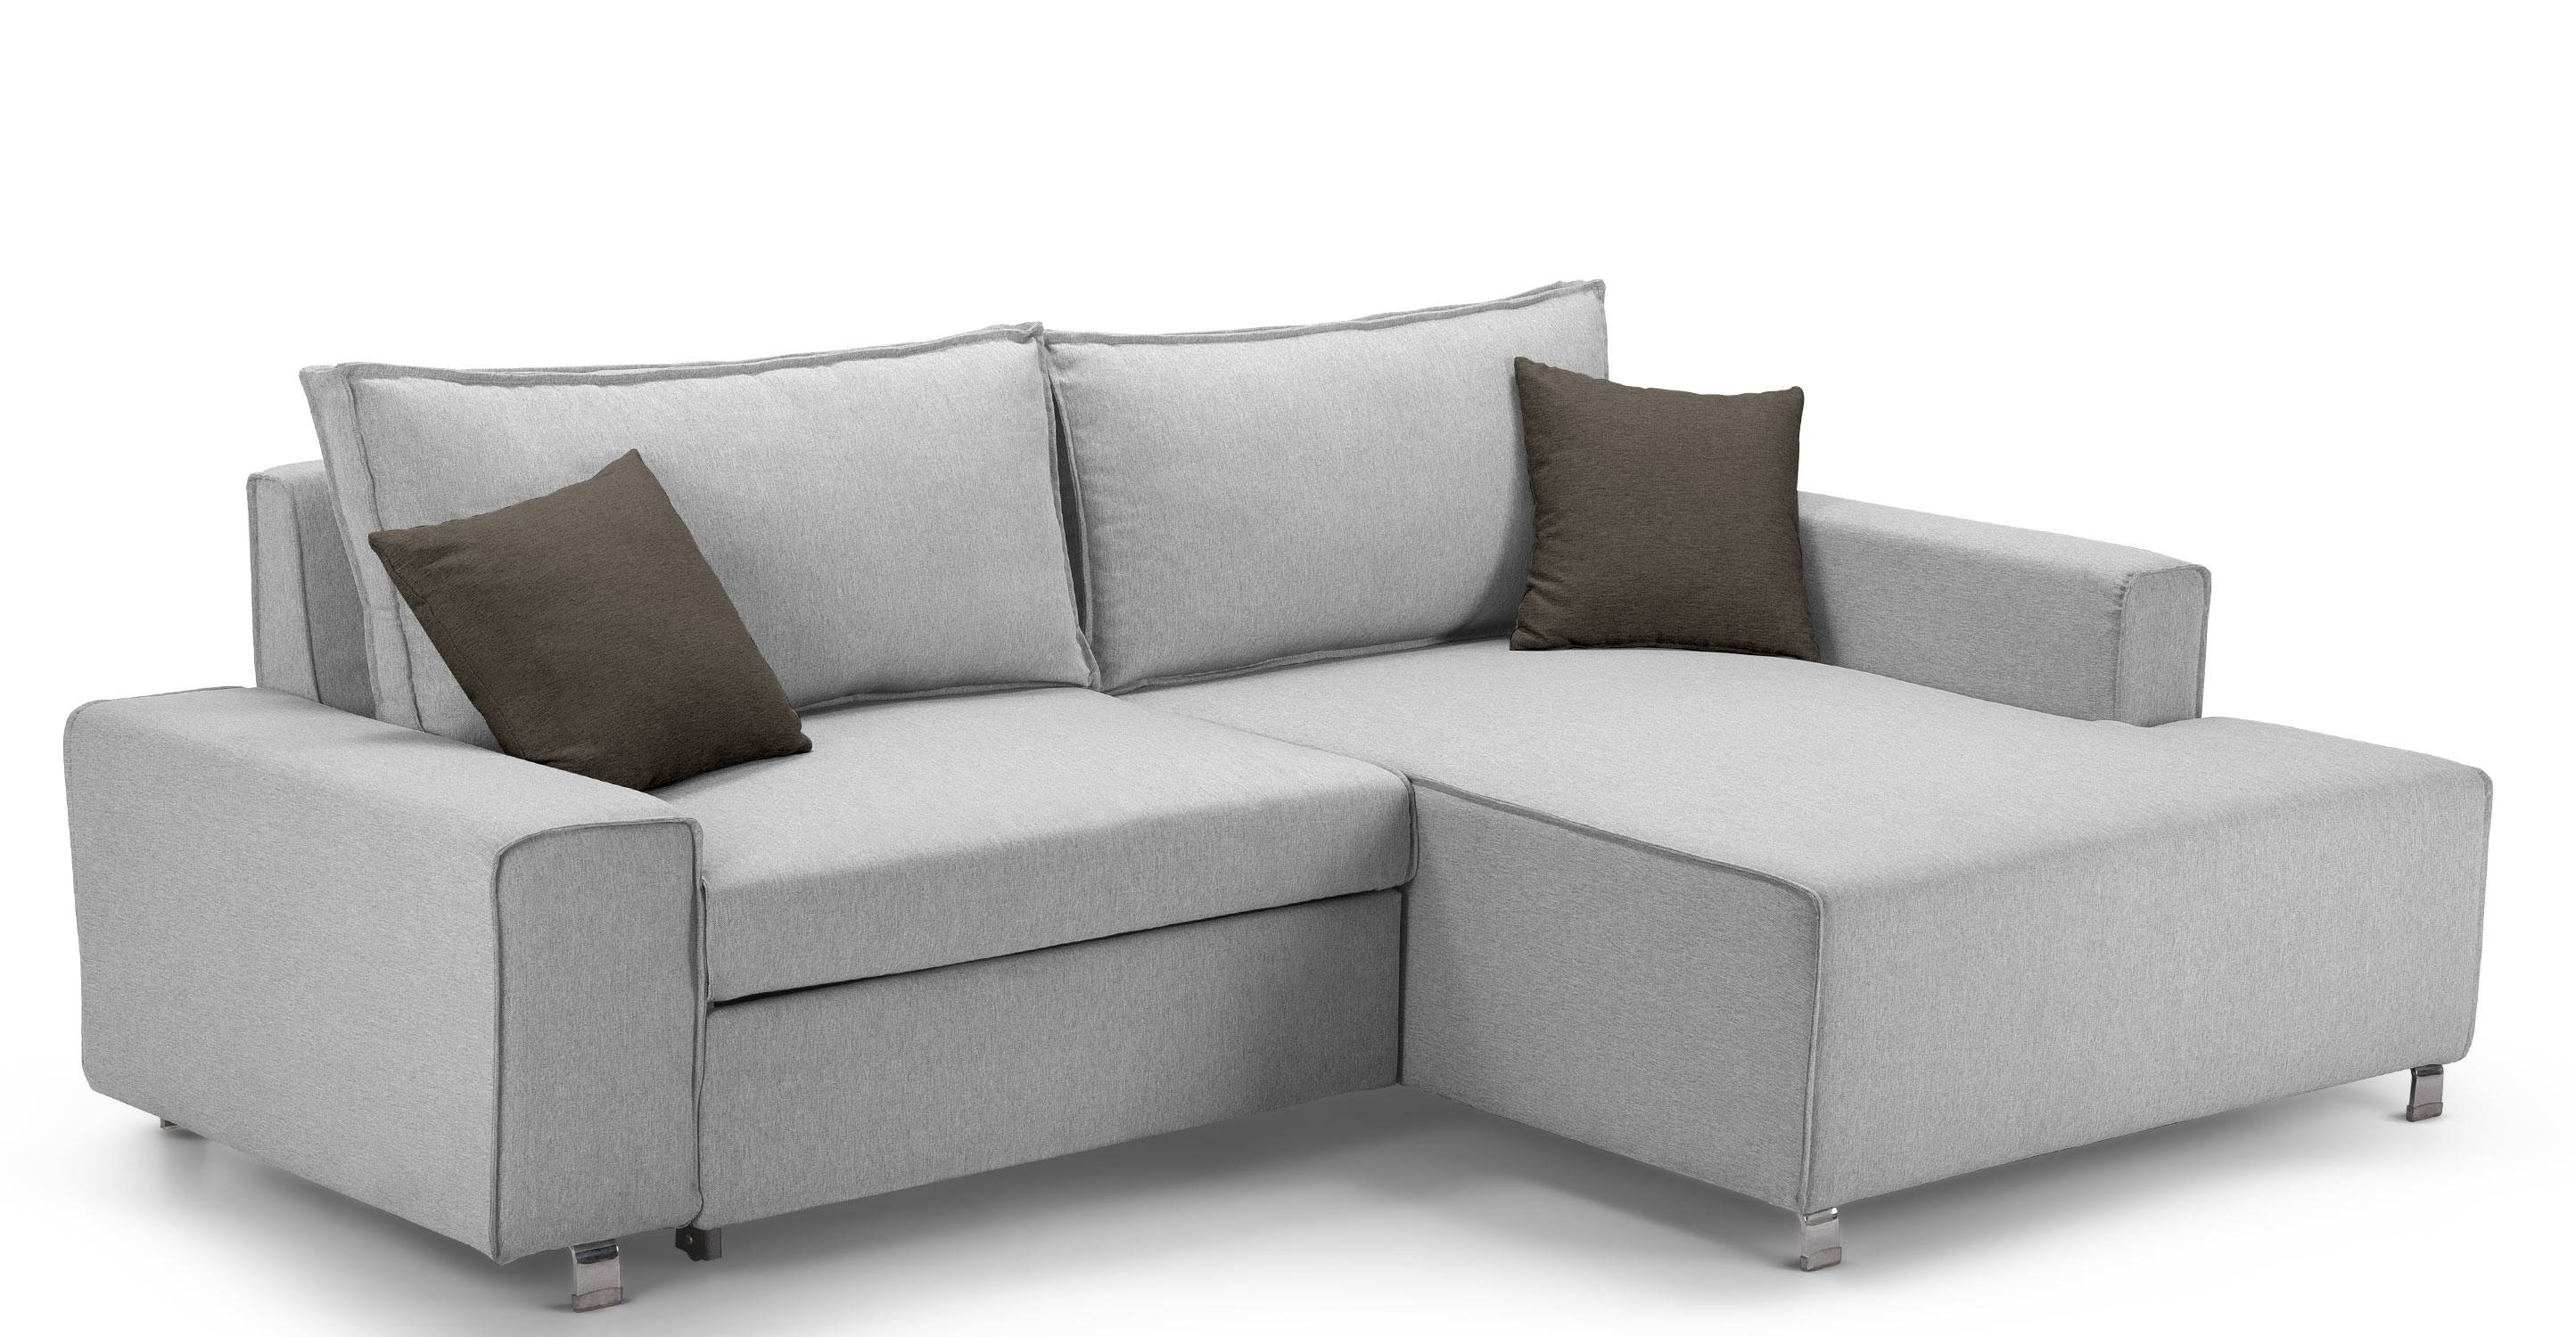 Ideas: Interesting Britania Corner Couch With Elegant Pattern For with regard to Sofa Corner Units (Image 10 of 30)